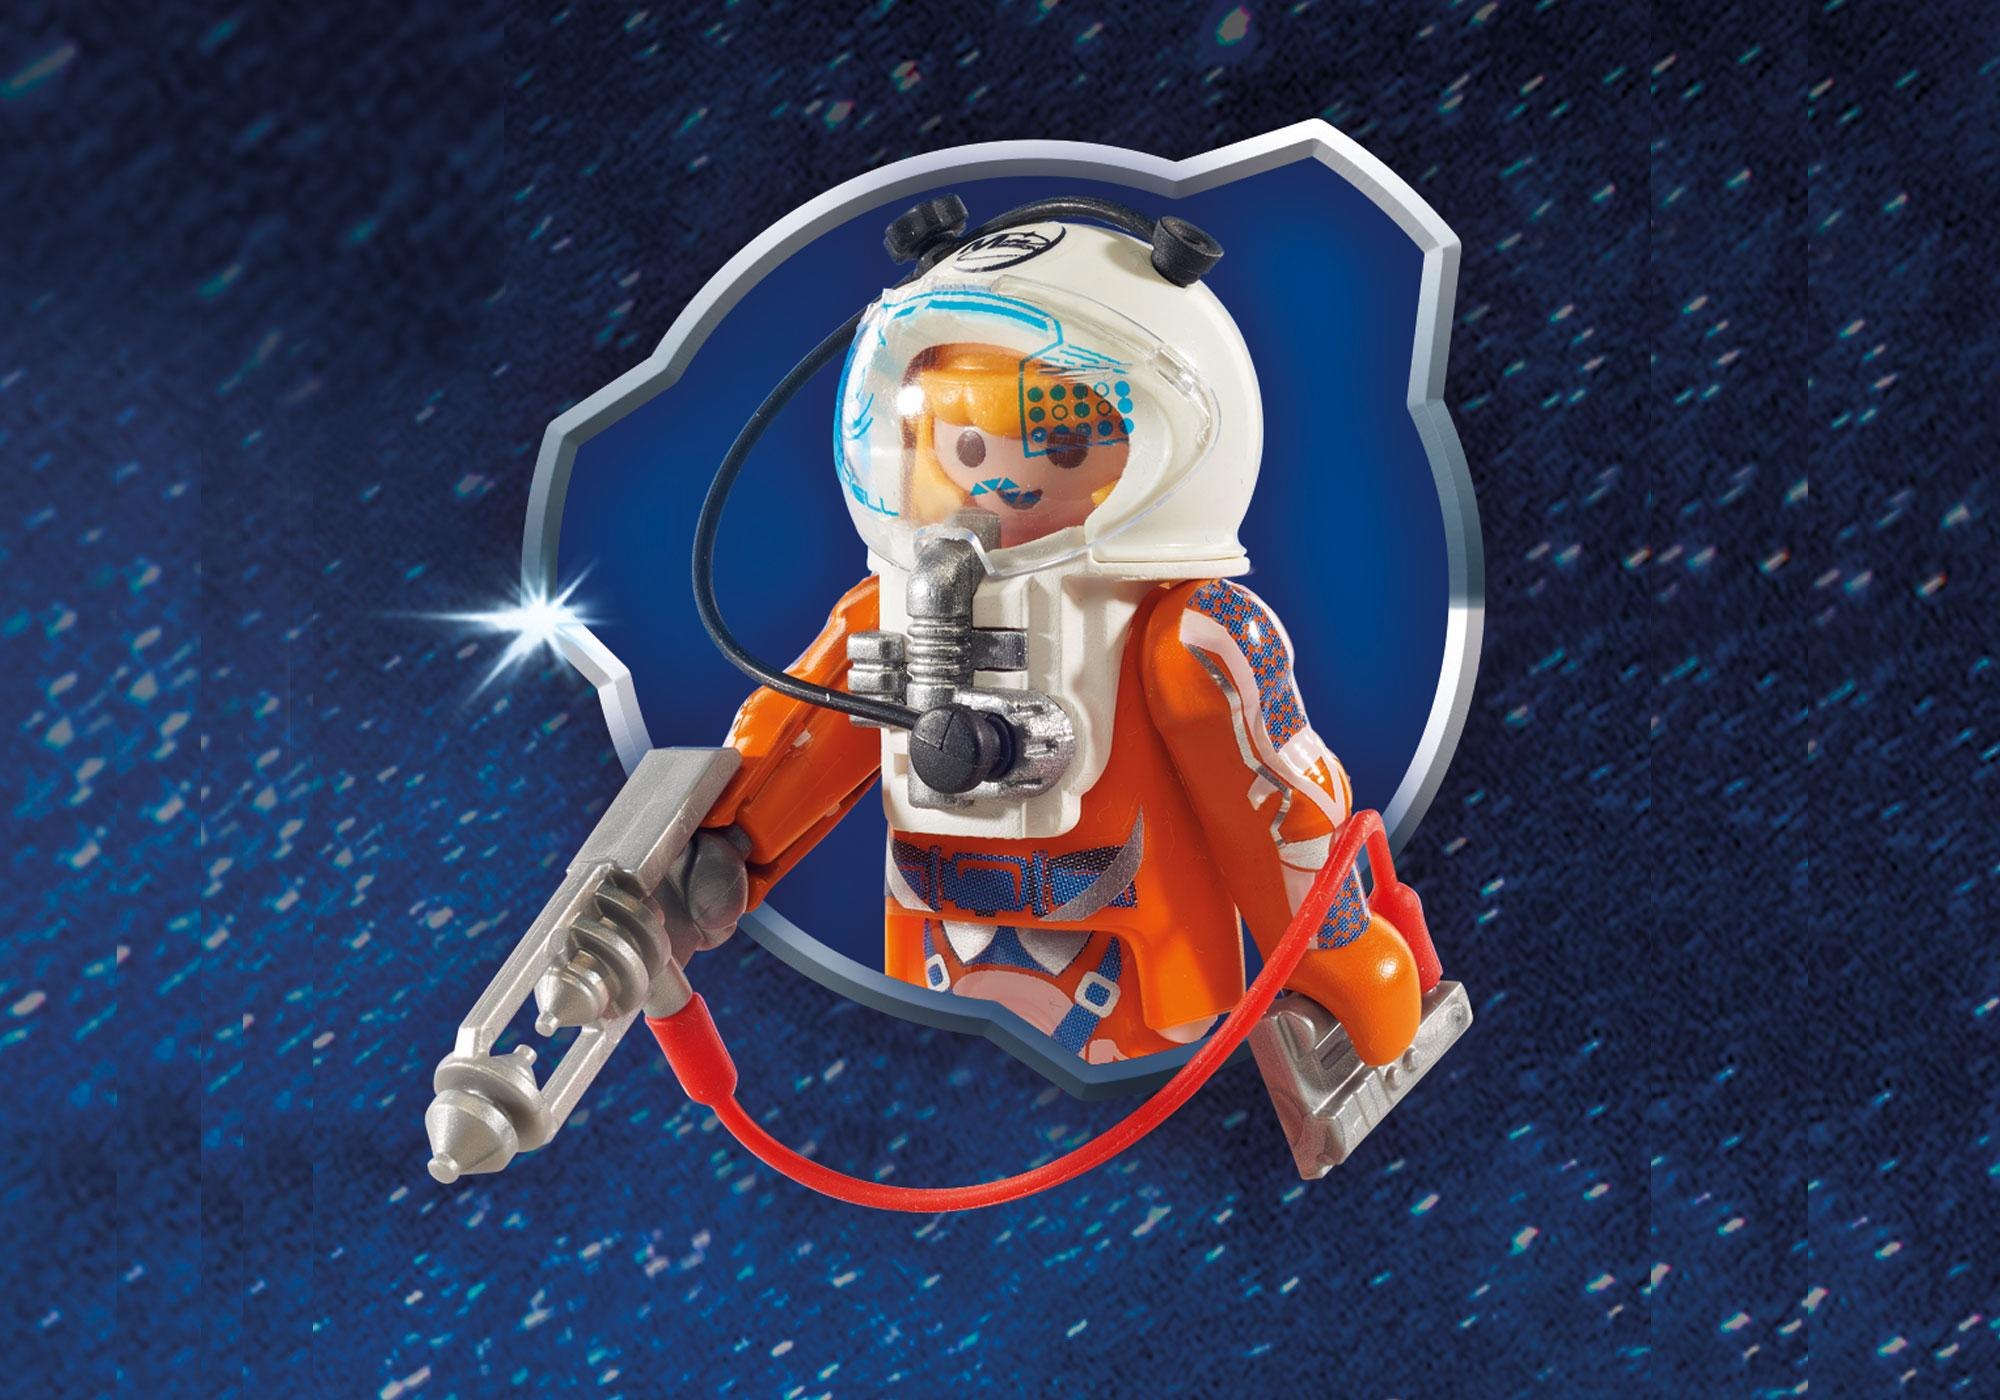 http://media.playmobil.com/i/playmobil/9488_product_extra2/Mission Rocket with Launch Site